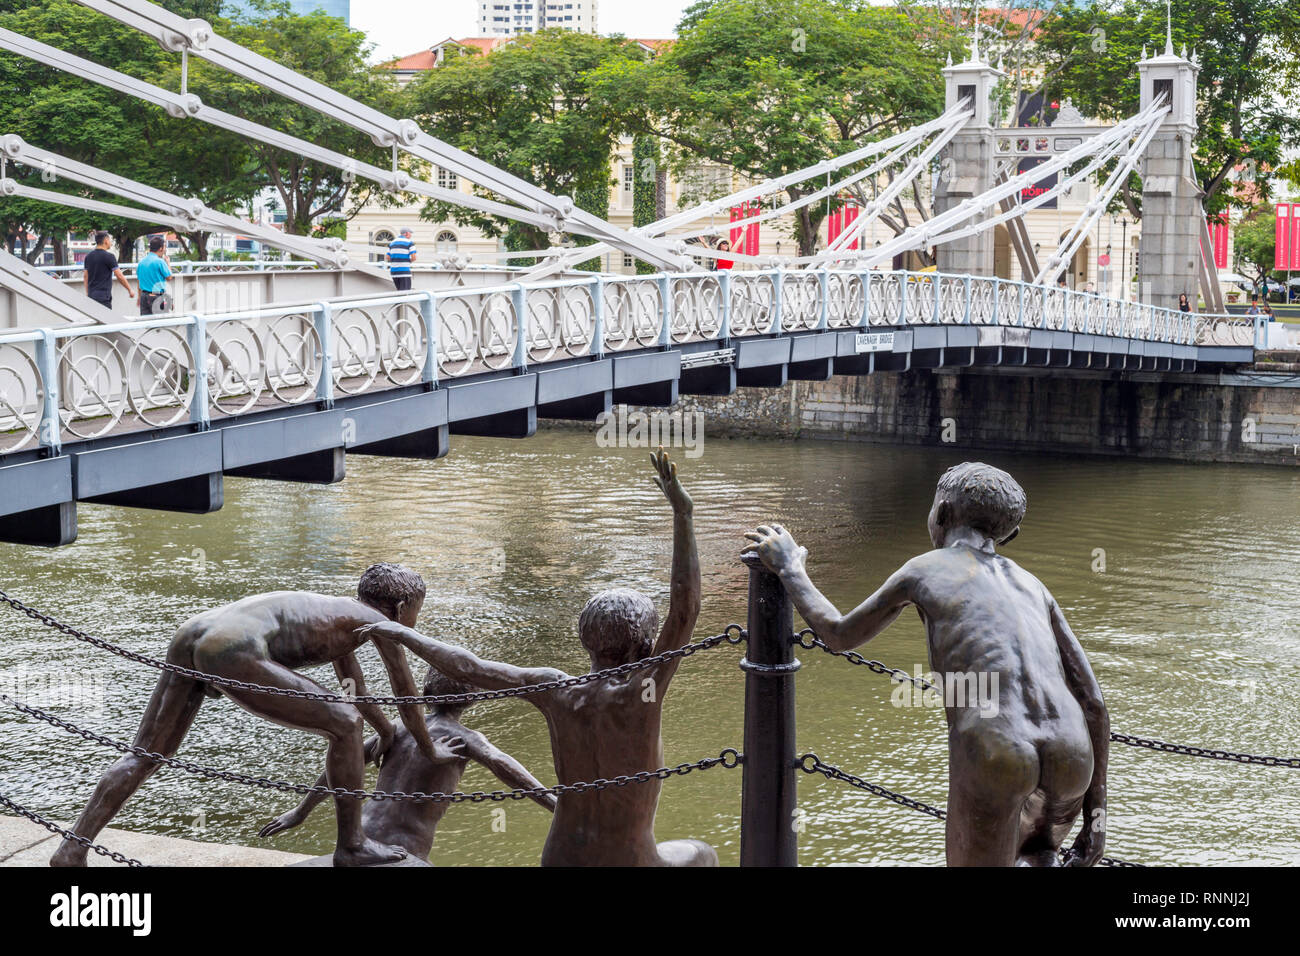 Cavenagh Bridge over Singapore River, 1870, Singapore.  Sculpture 'The First Generation' by Chong Fah Cheong. - Stock Image